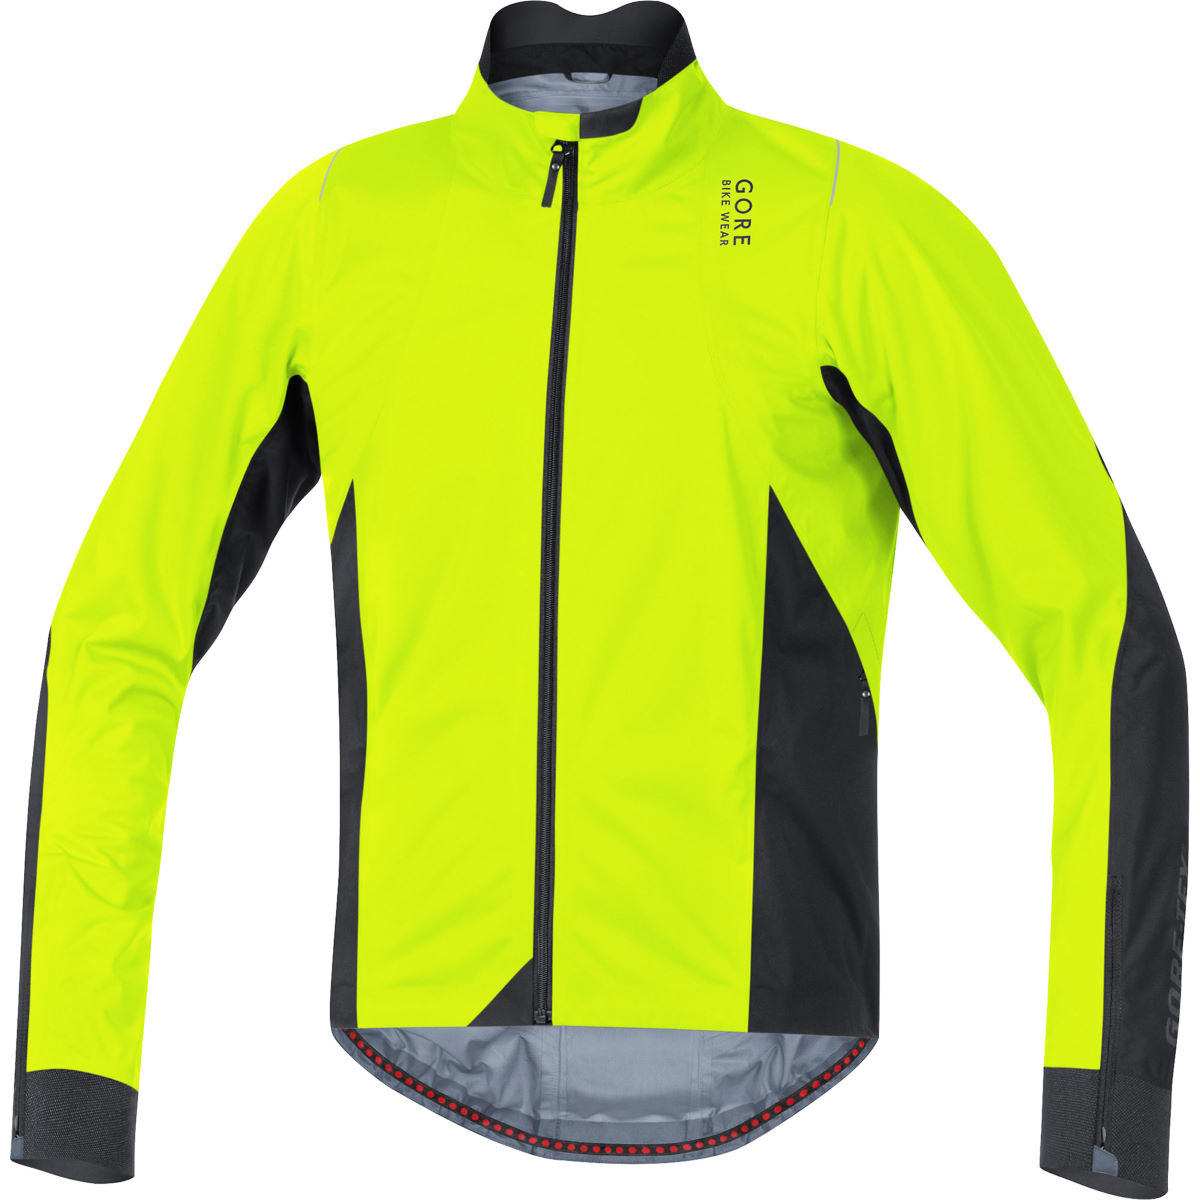 Gore Tex Jacket Shop For Cheap General Clothing And Save